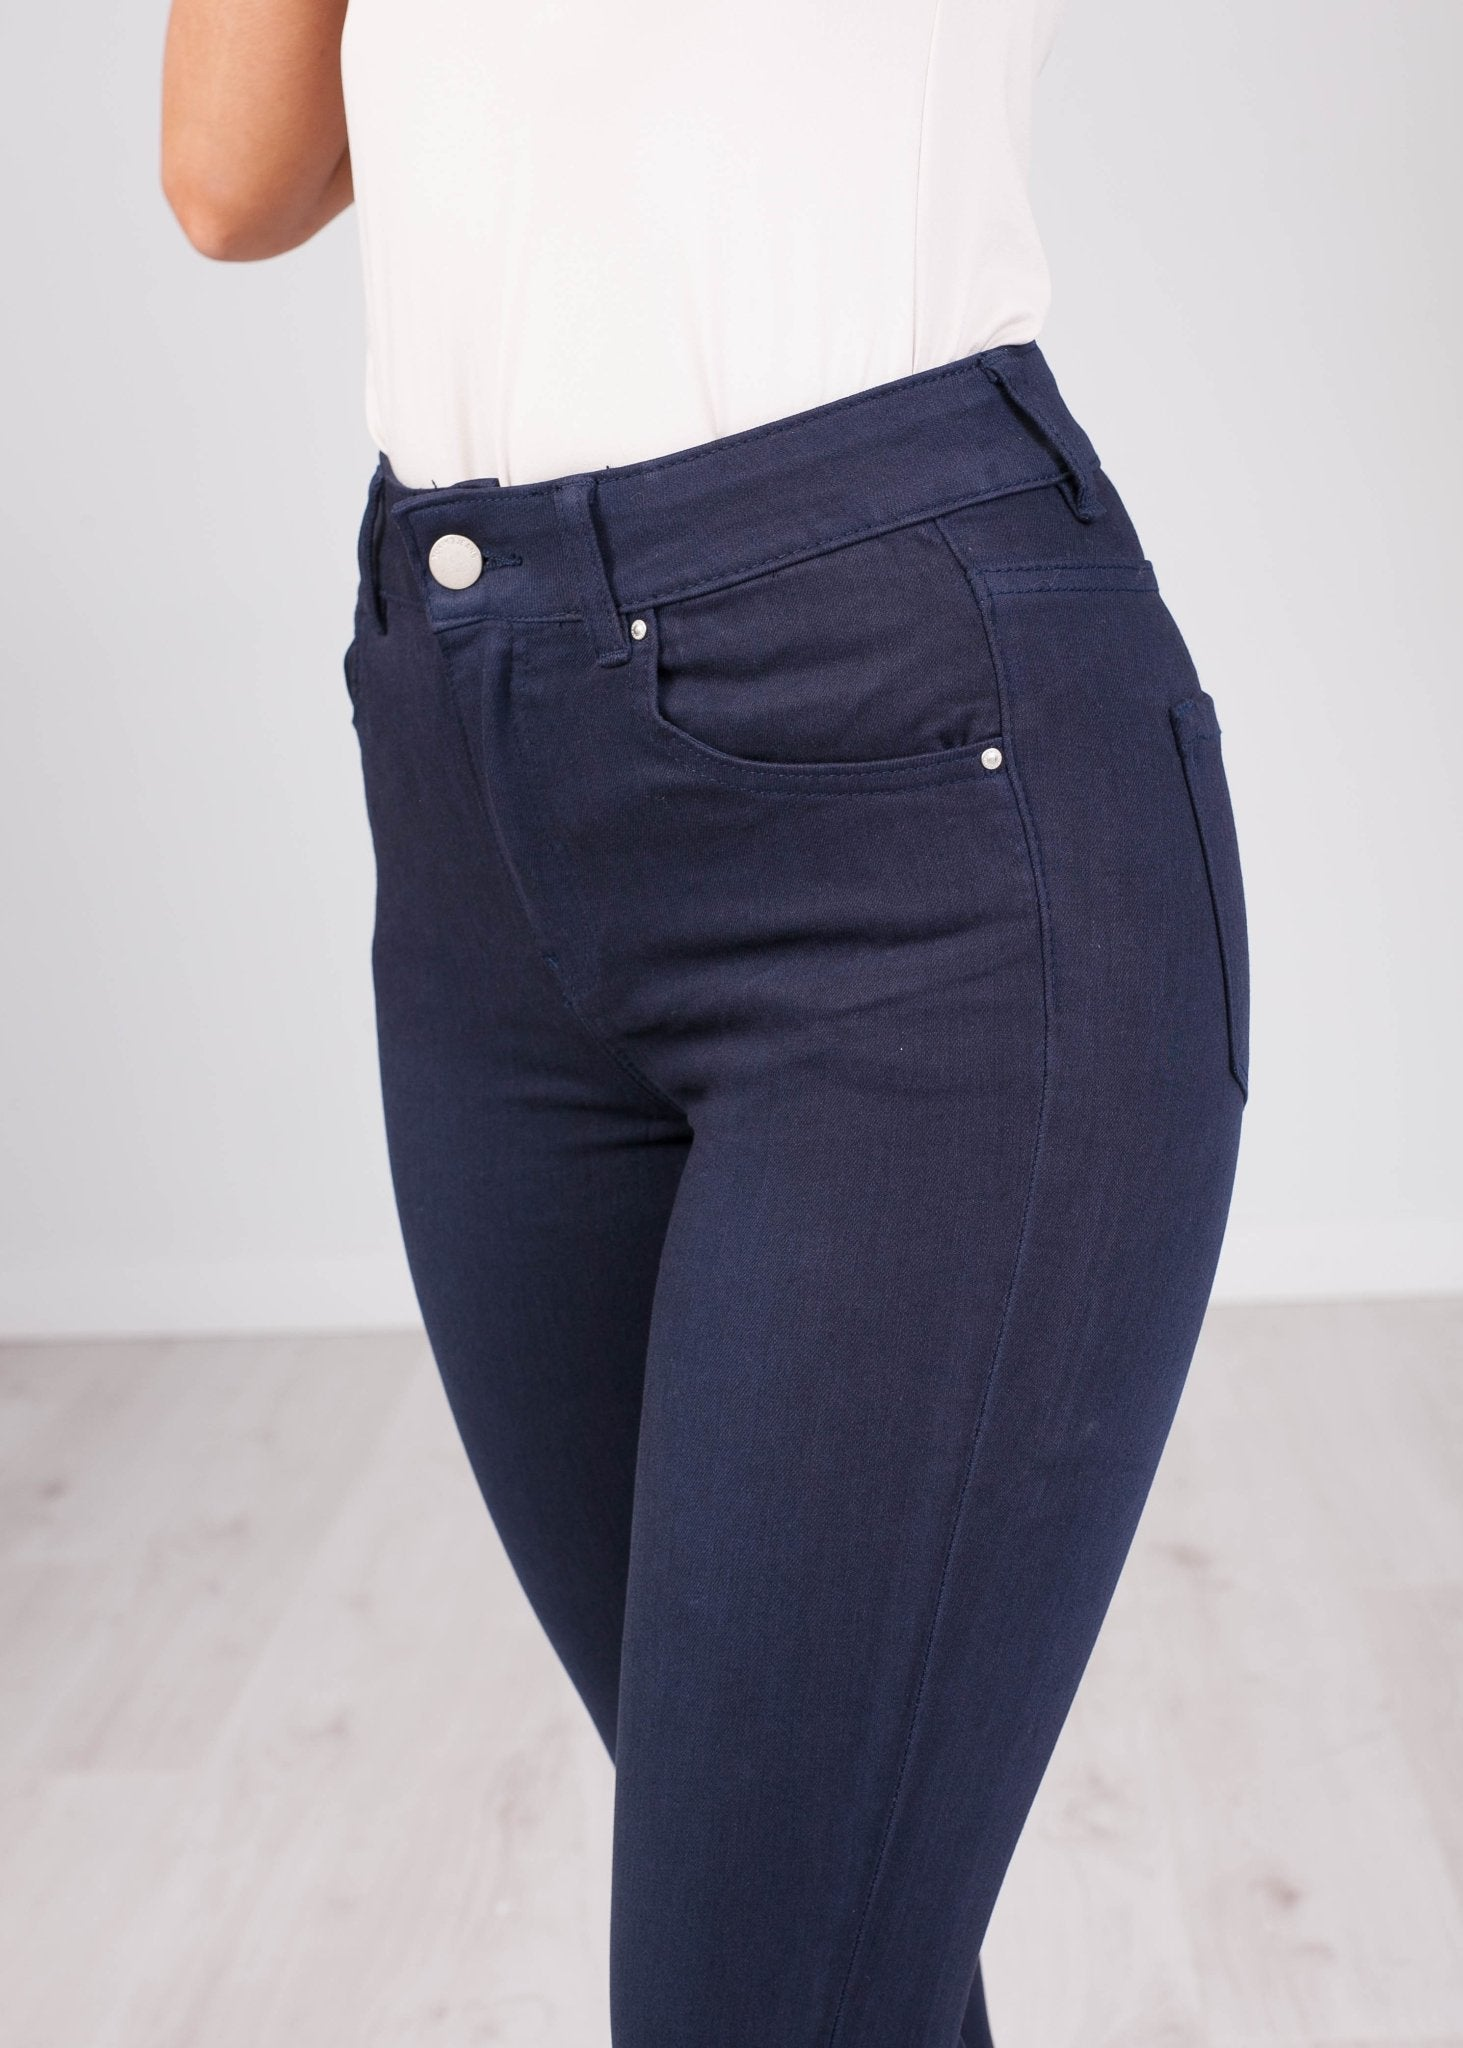 'Anna' Navy Jeans - The Walk in Wardrobe